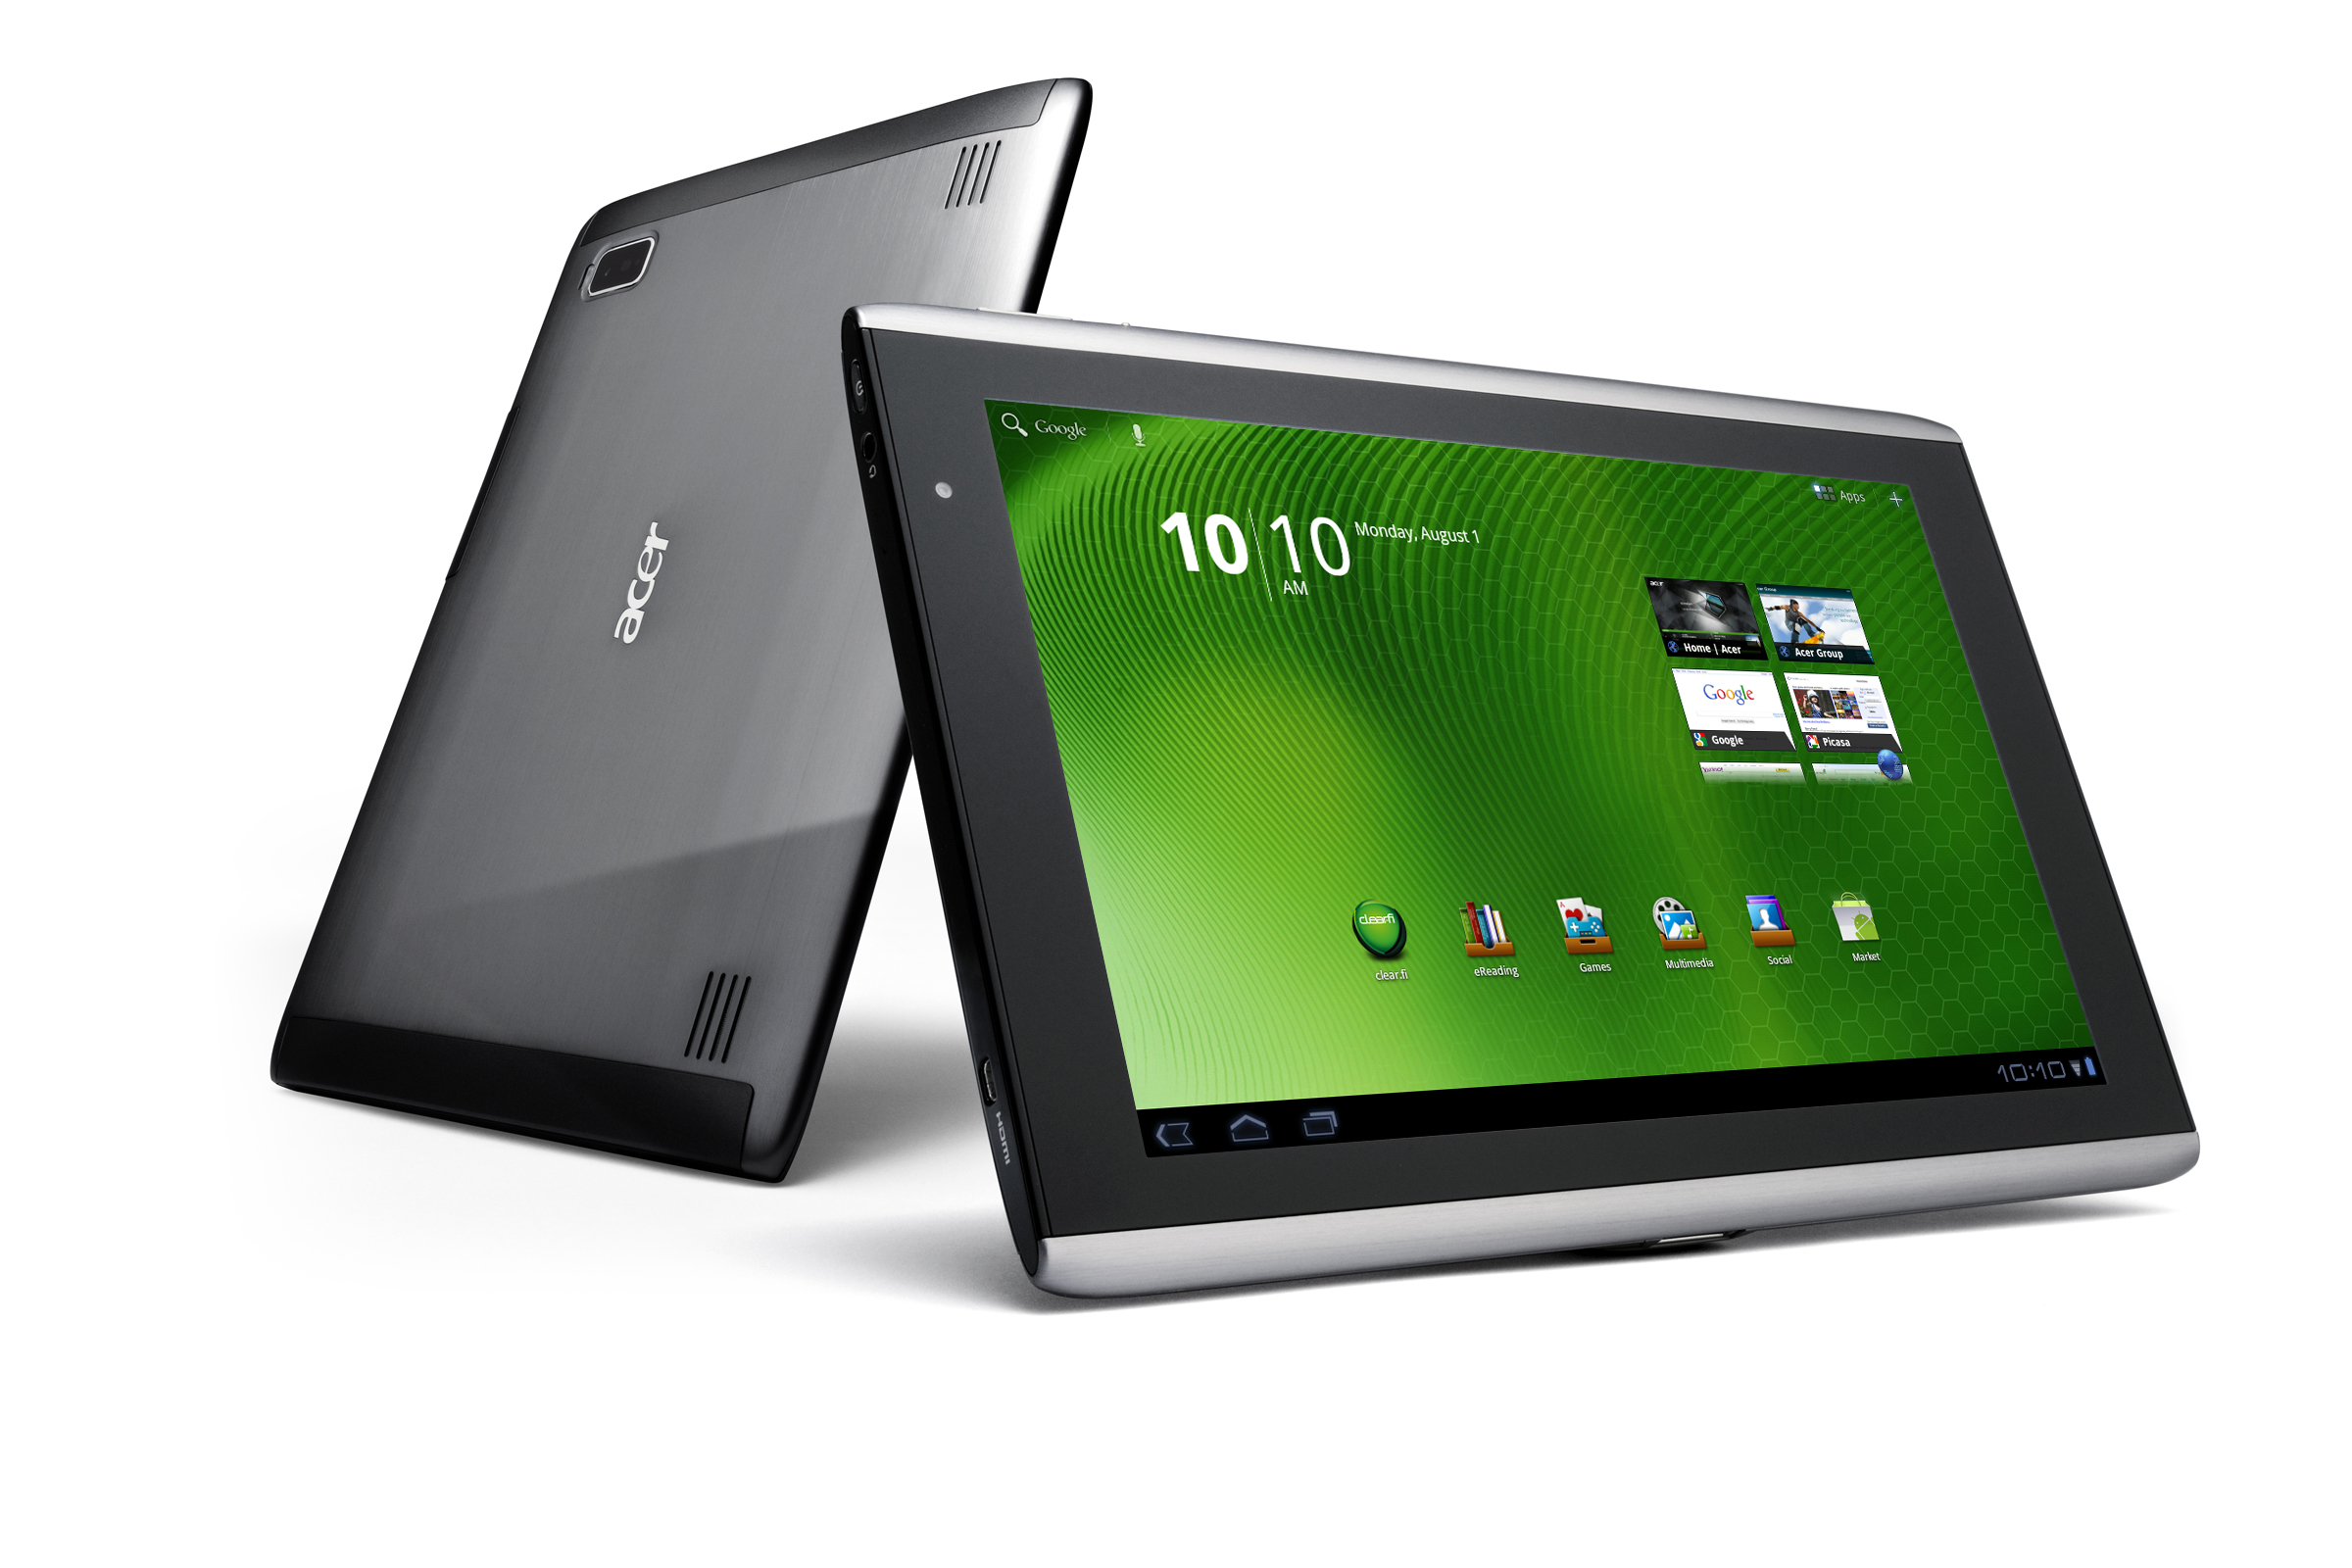 Sony cyber shot dsc w80 digital camera resource page - Acer Iconia Tablet Android Tegra 2 32gb 1ghz 10 Inch A500 10s32u